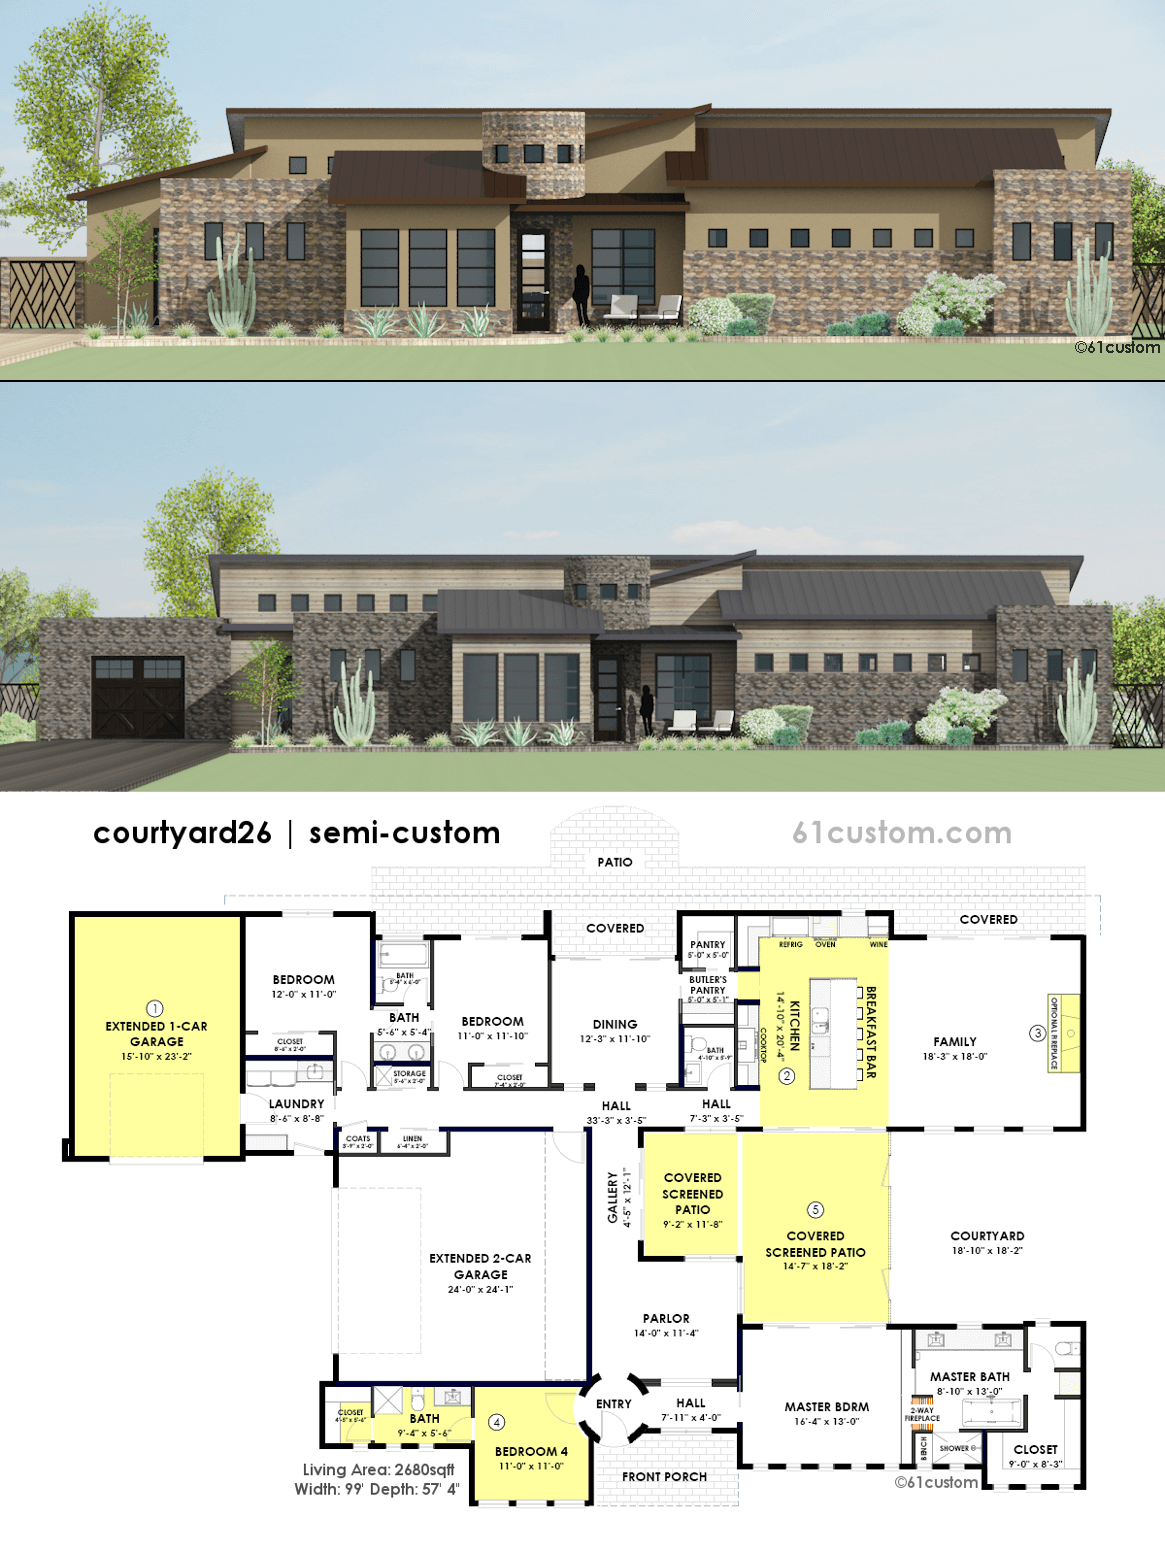 Contemporary side courtyard house plan 61custom for Www houseplans